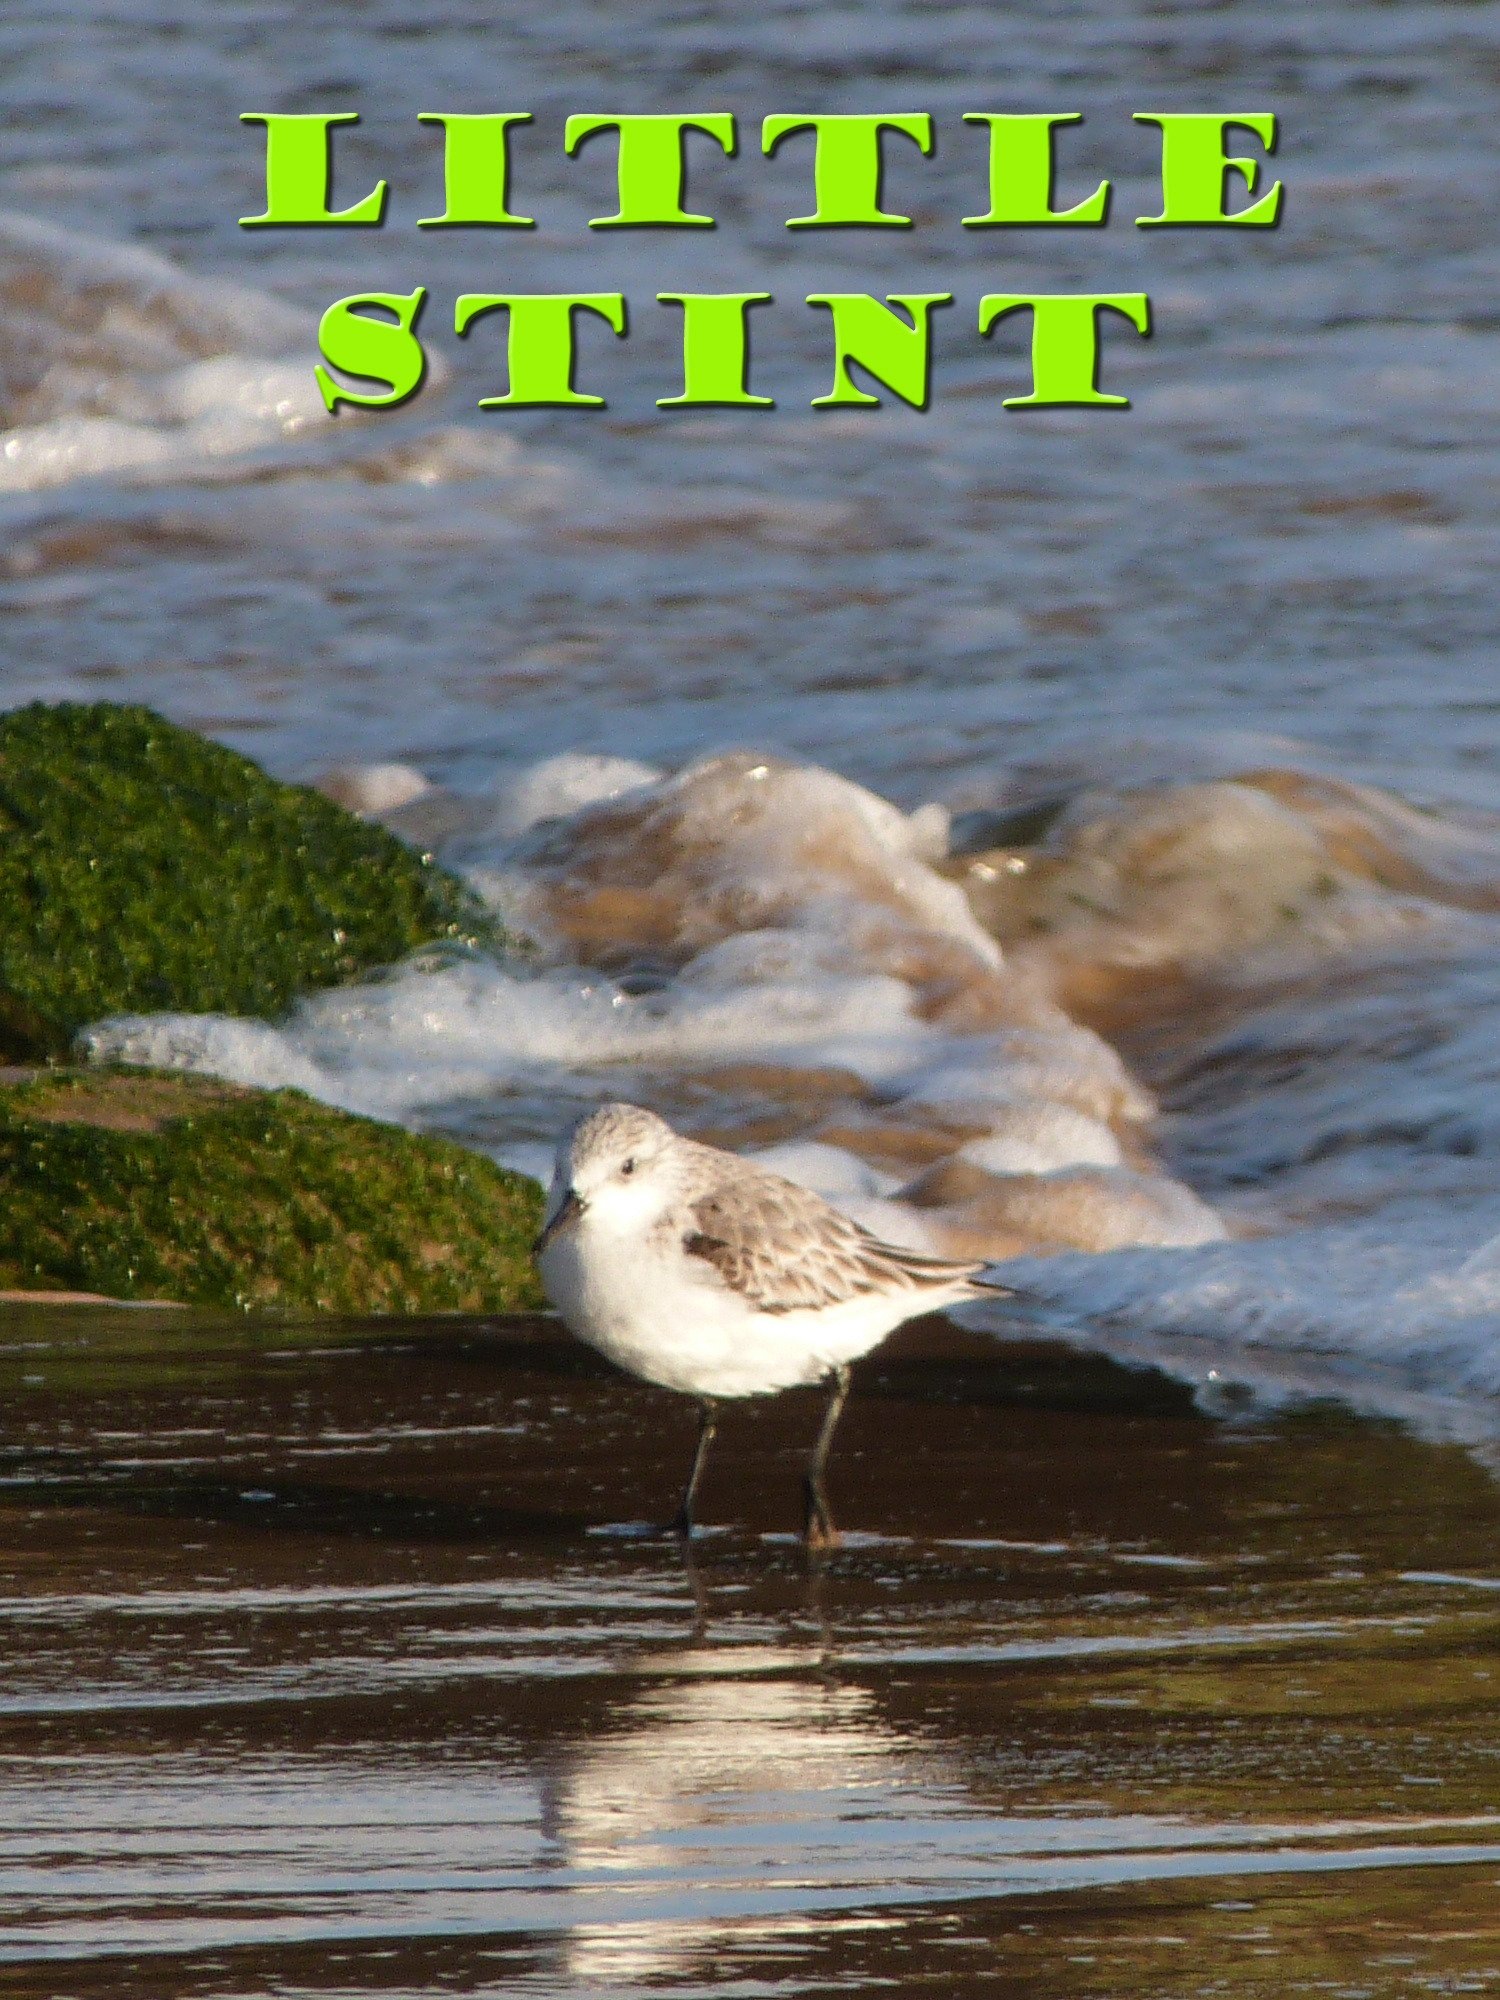 Clip: Little stint